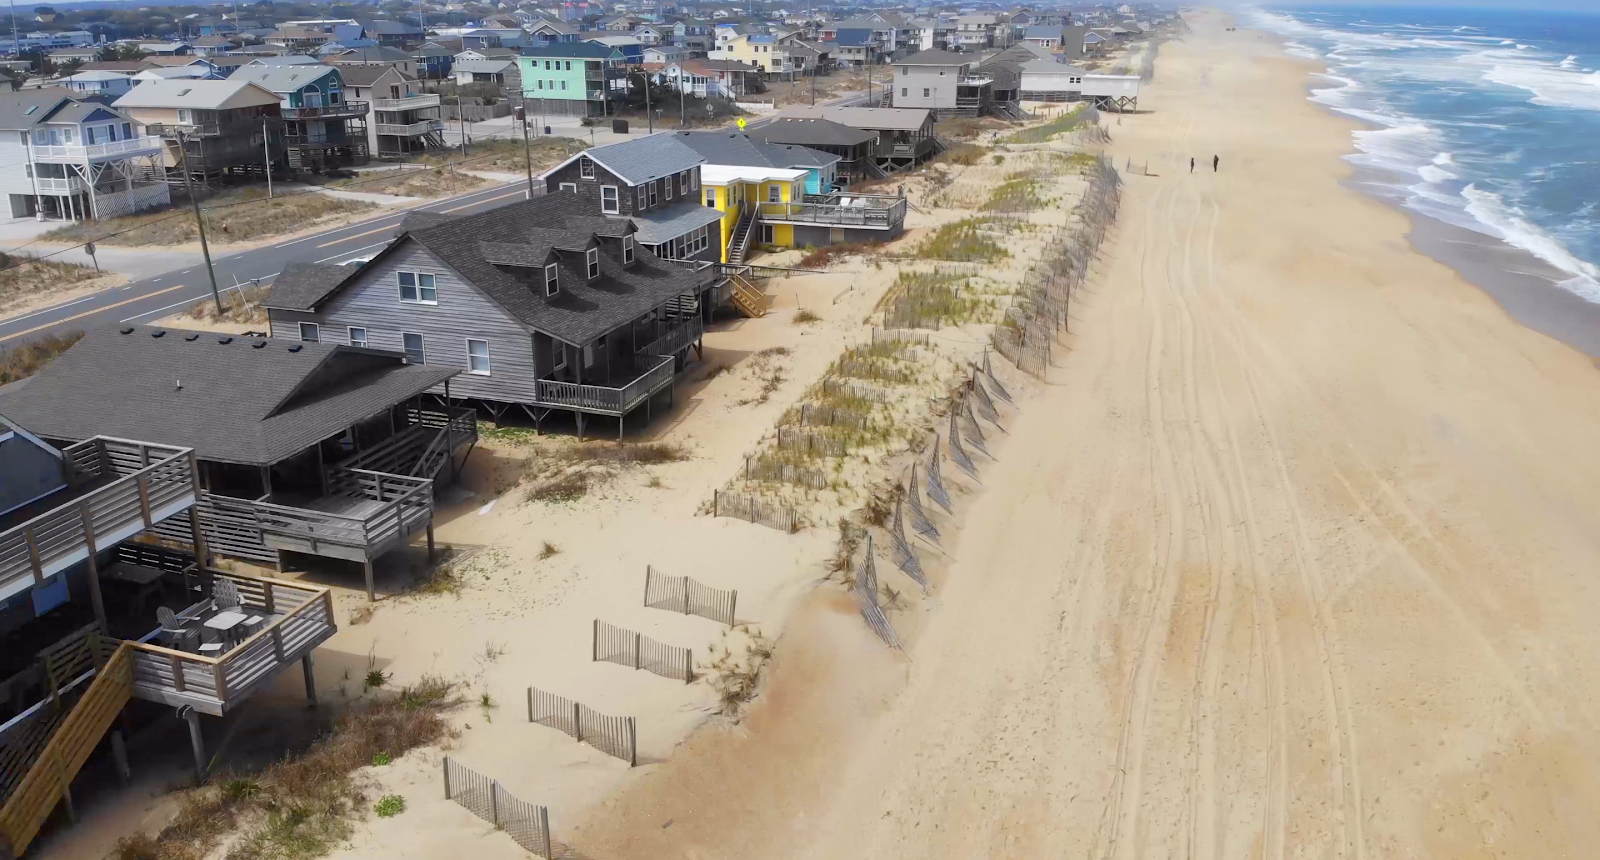 Drone picture of Kitty Hawk, North Carolina